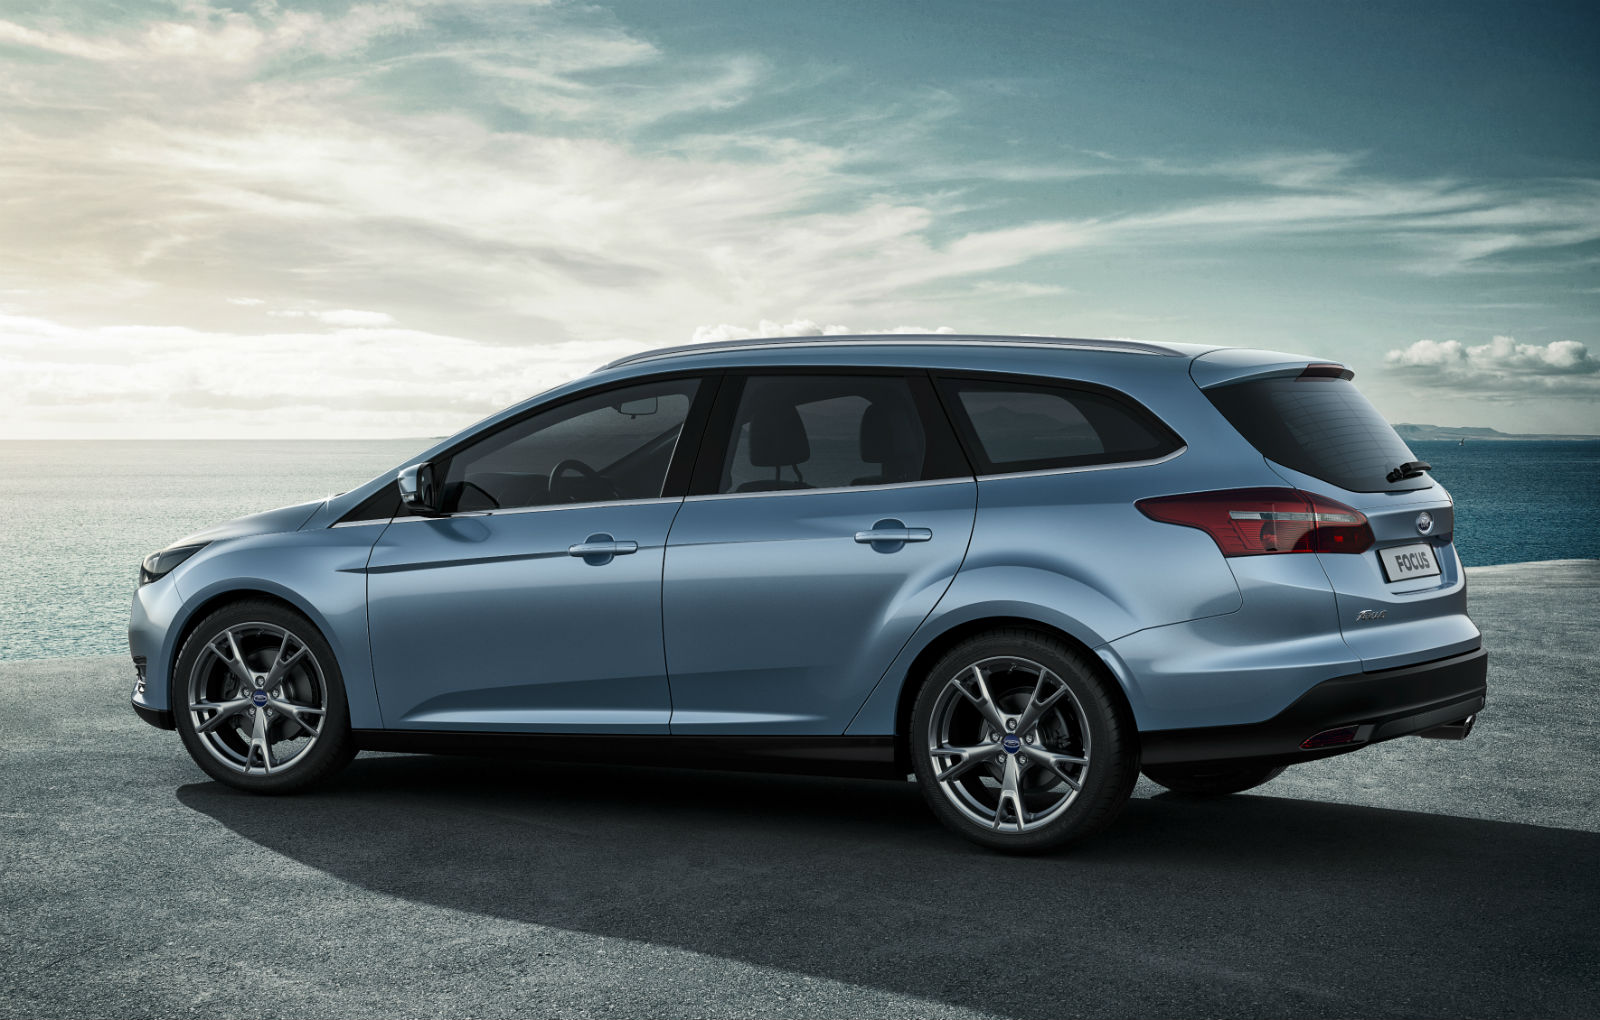 2015 Ford Focus Wagon Car Wallpaper   HD 1600x1020